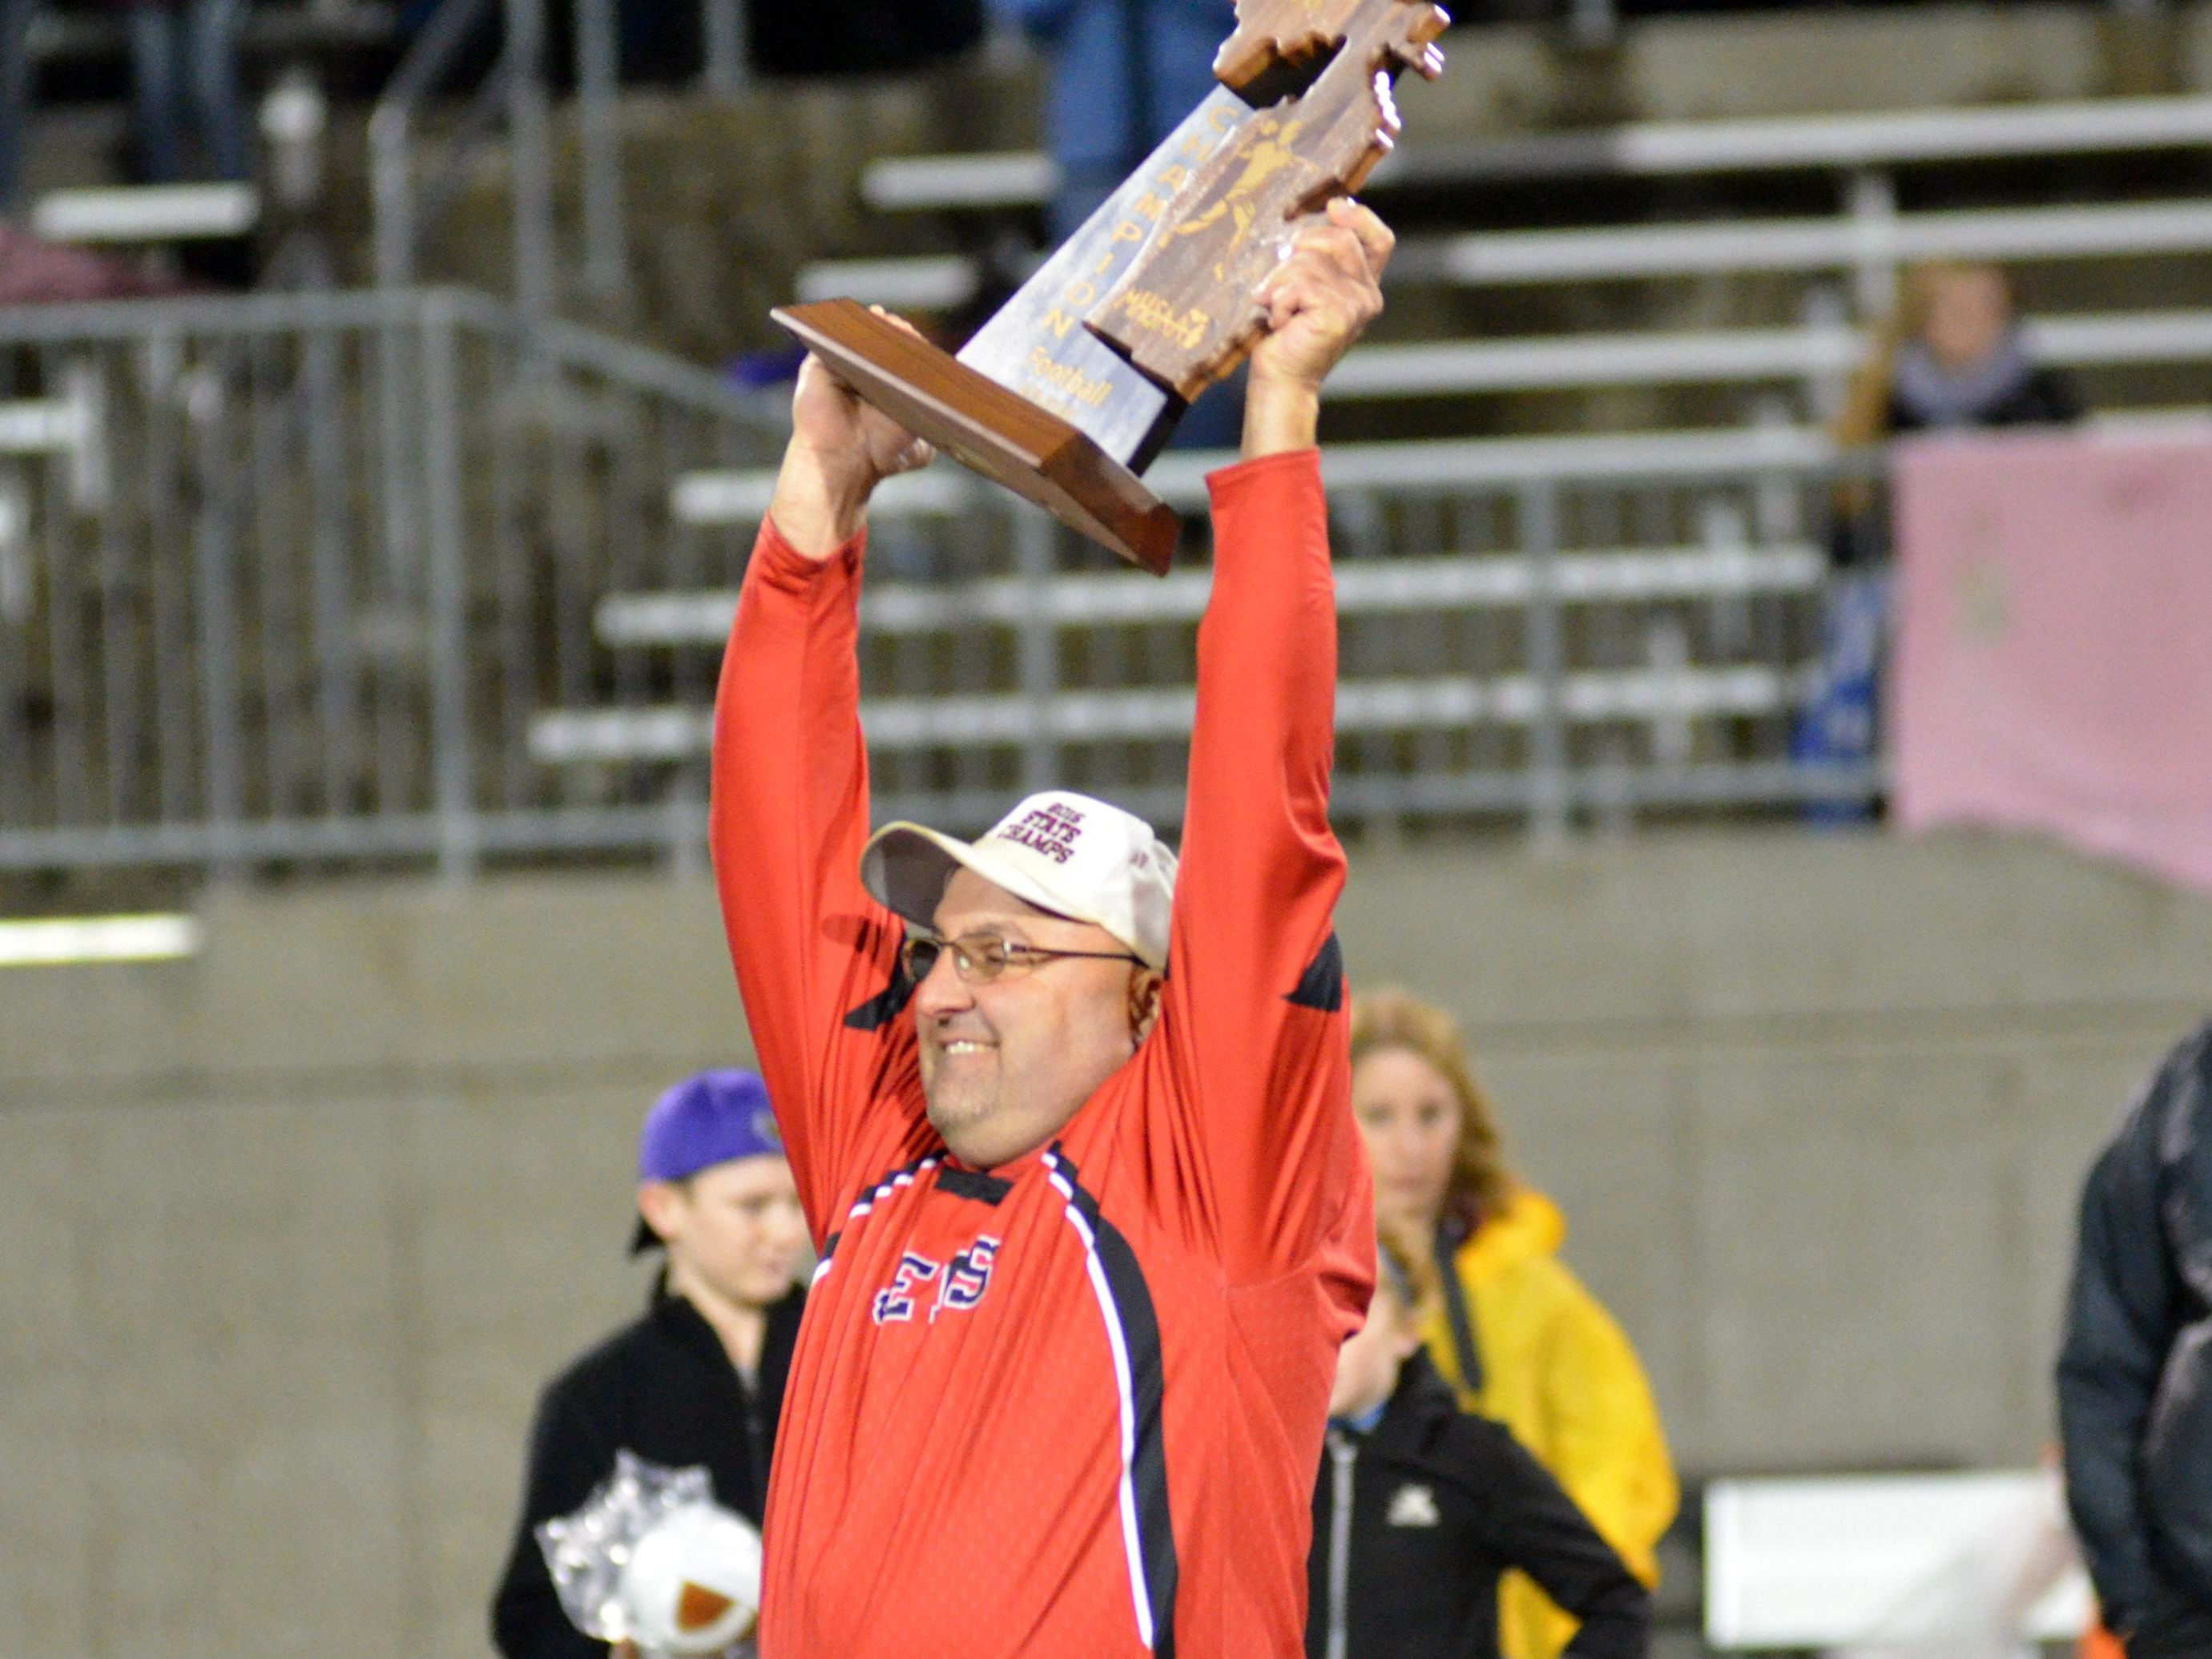 Powers North Central coach Kevin Bellefeuil holds up the 8-man state championship trophy.